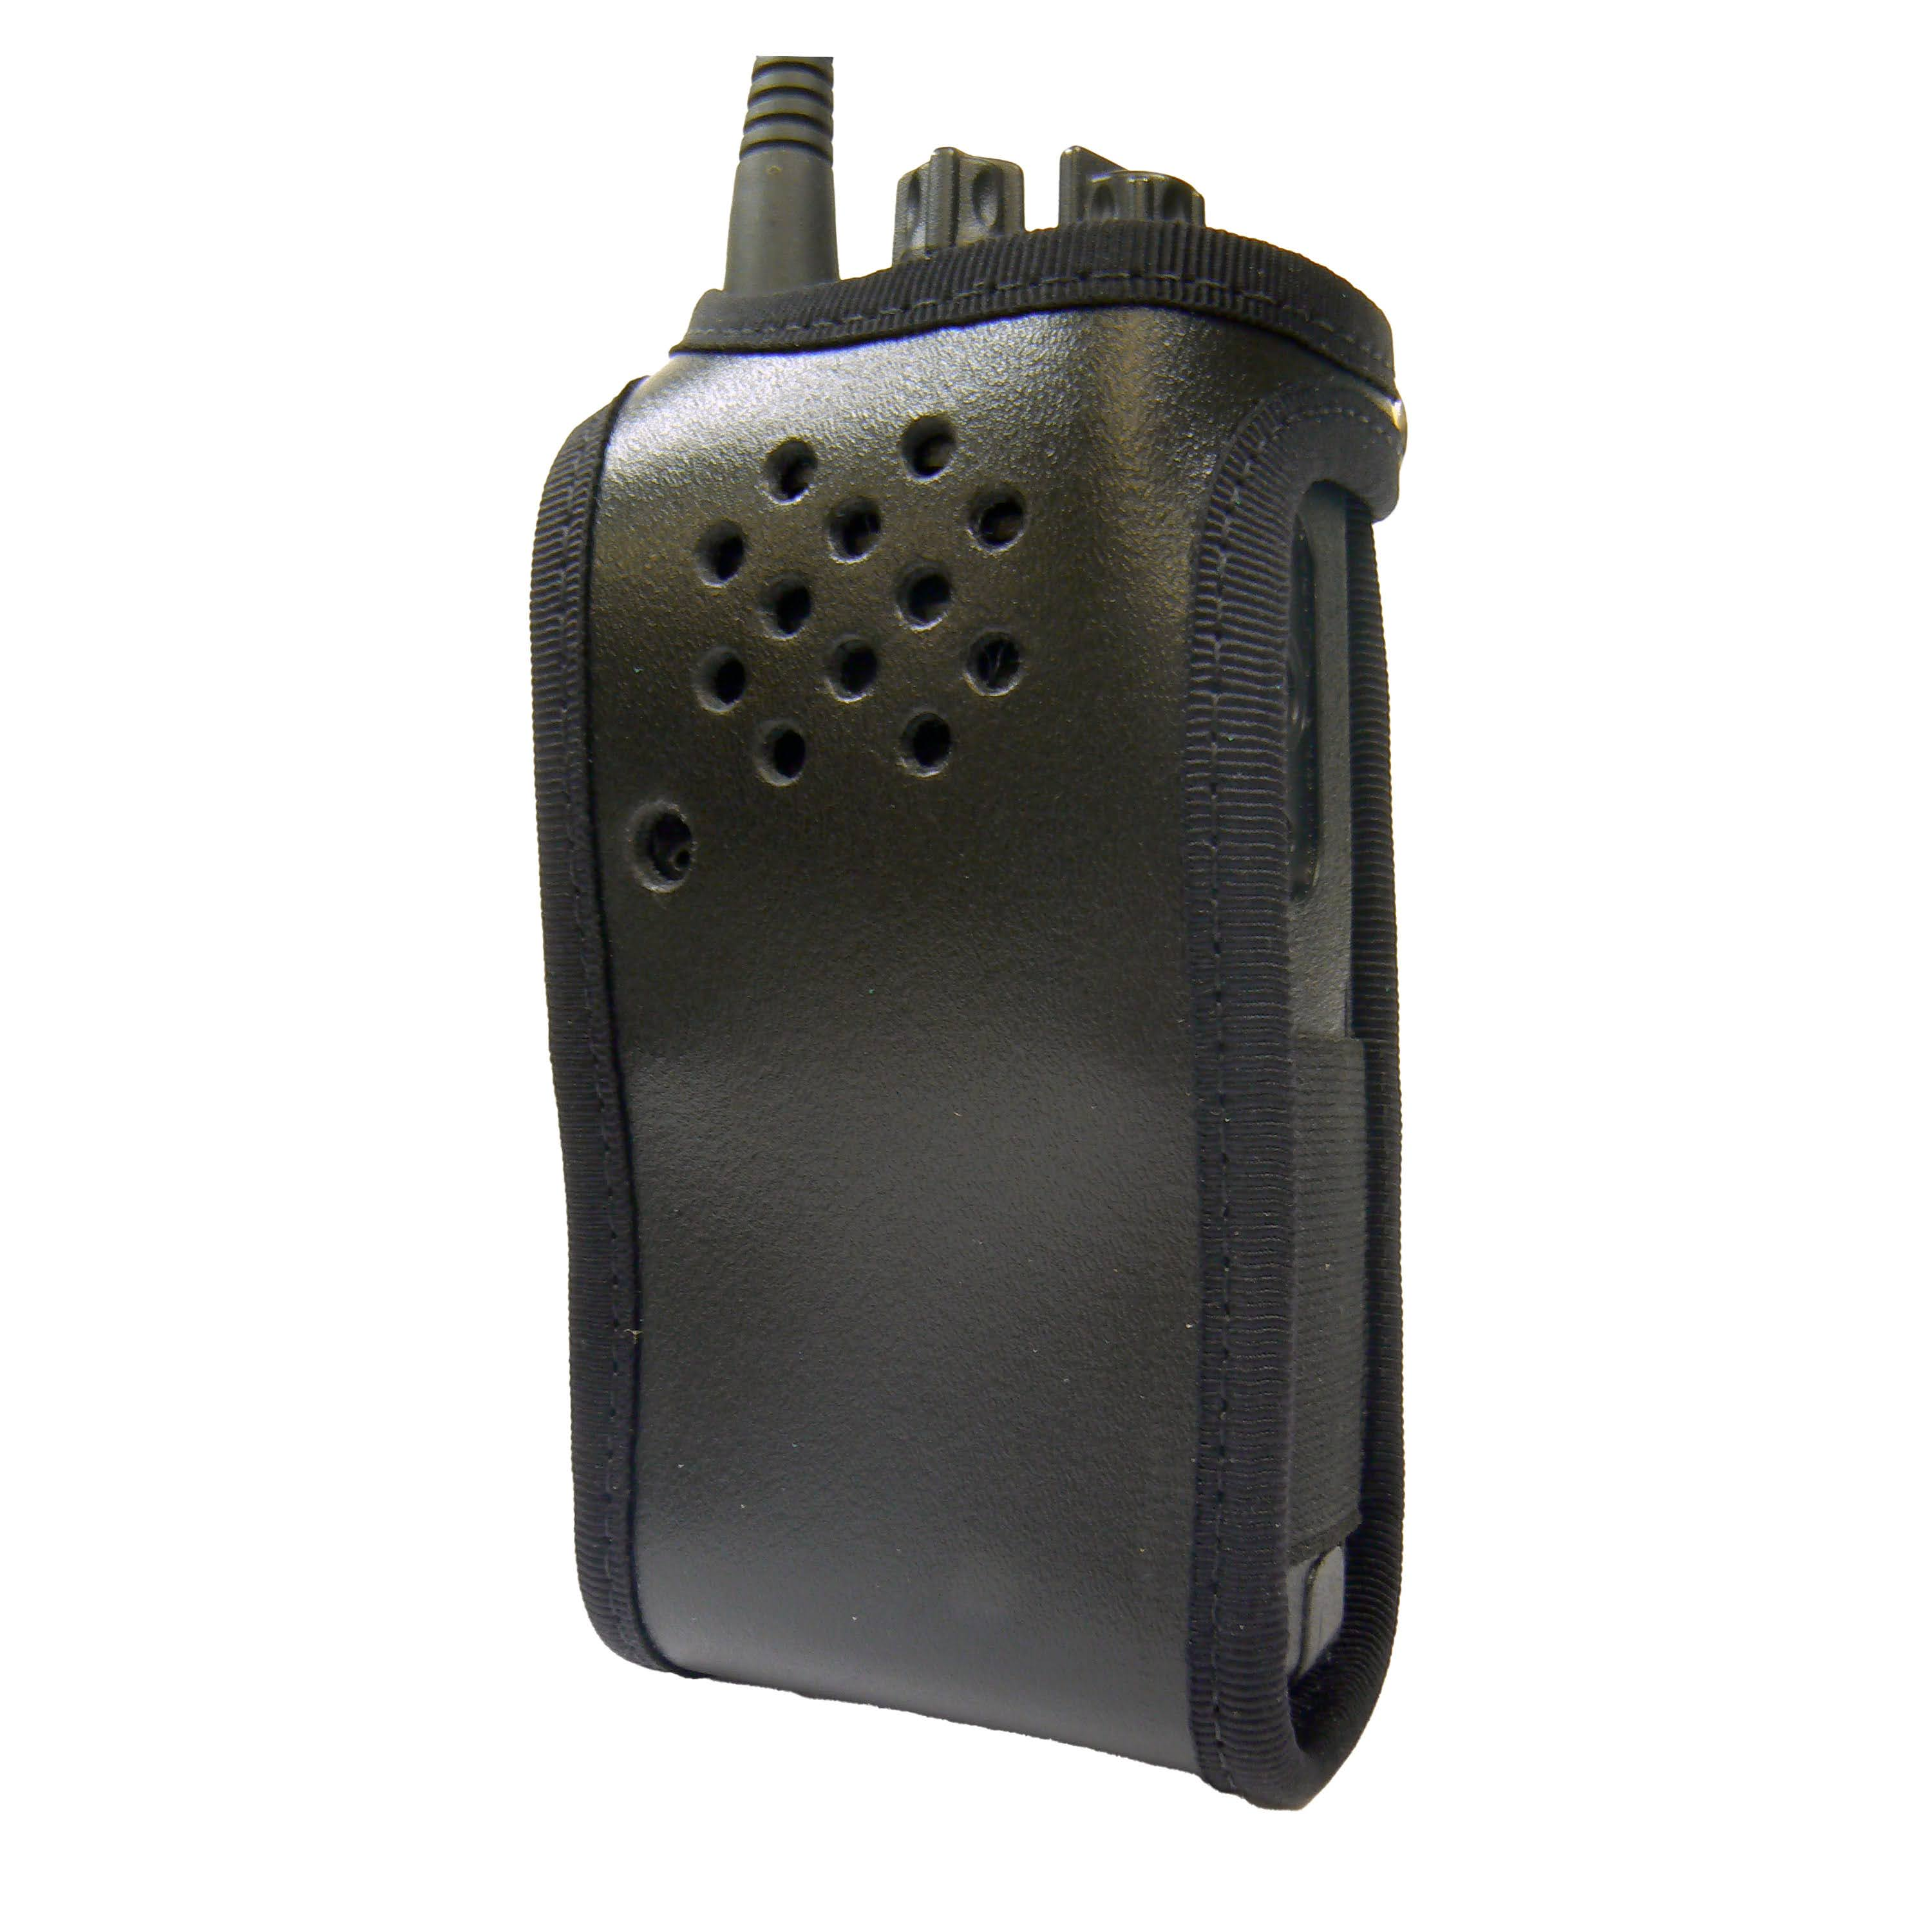 Vertex Yaesu VX410-VX420 Radio Case leather